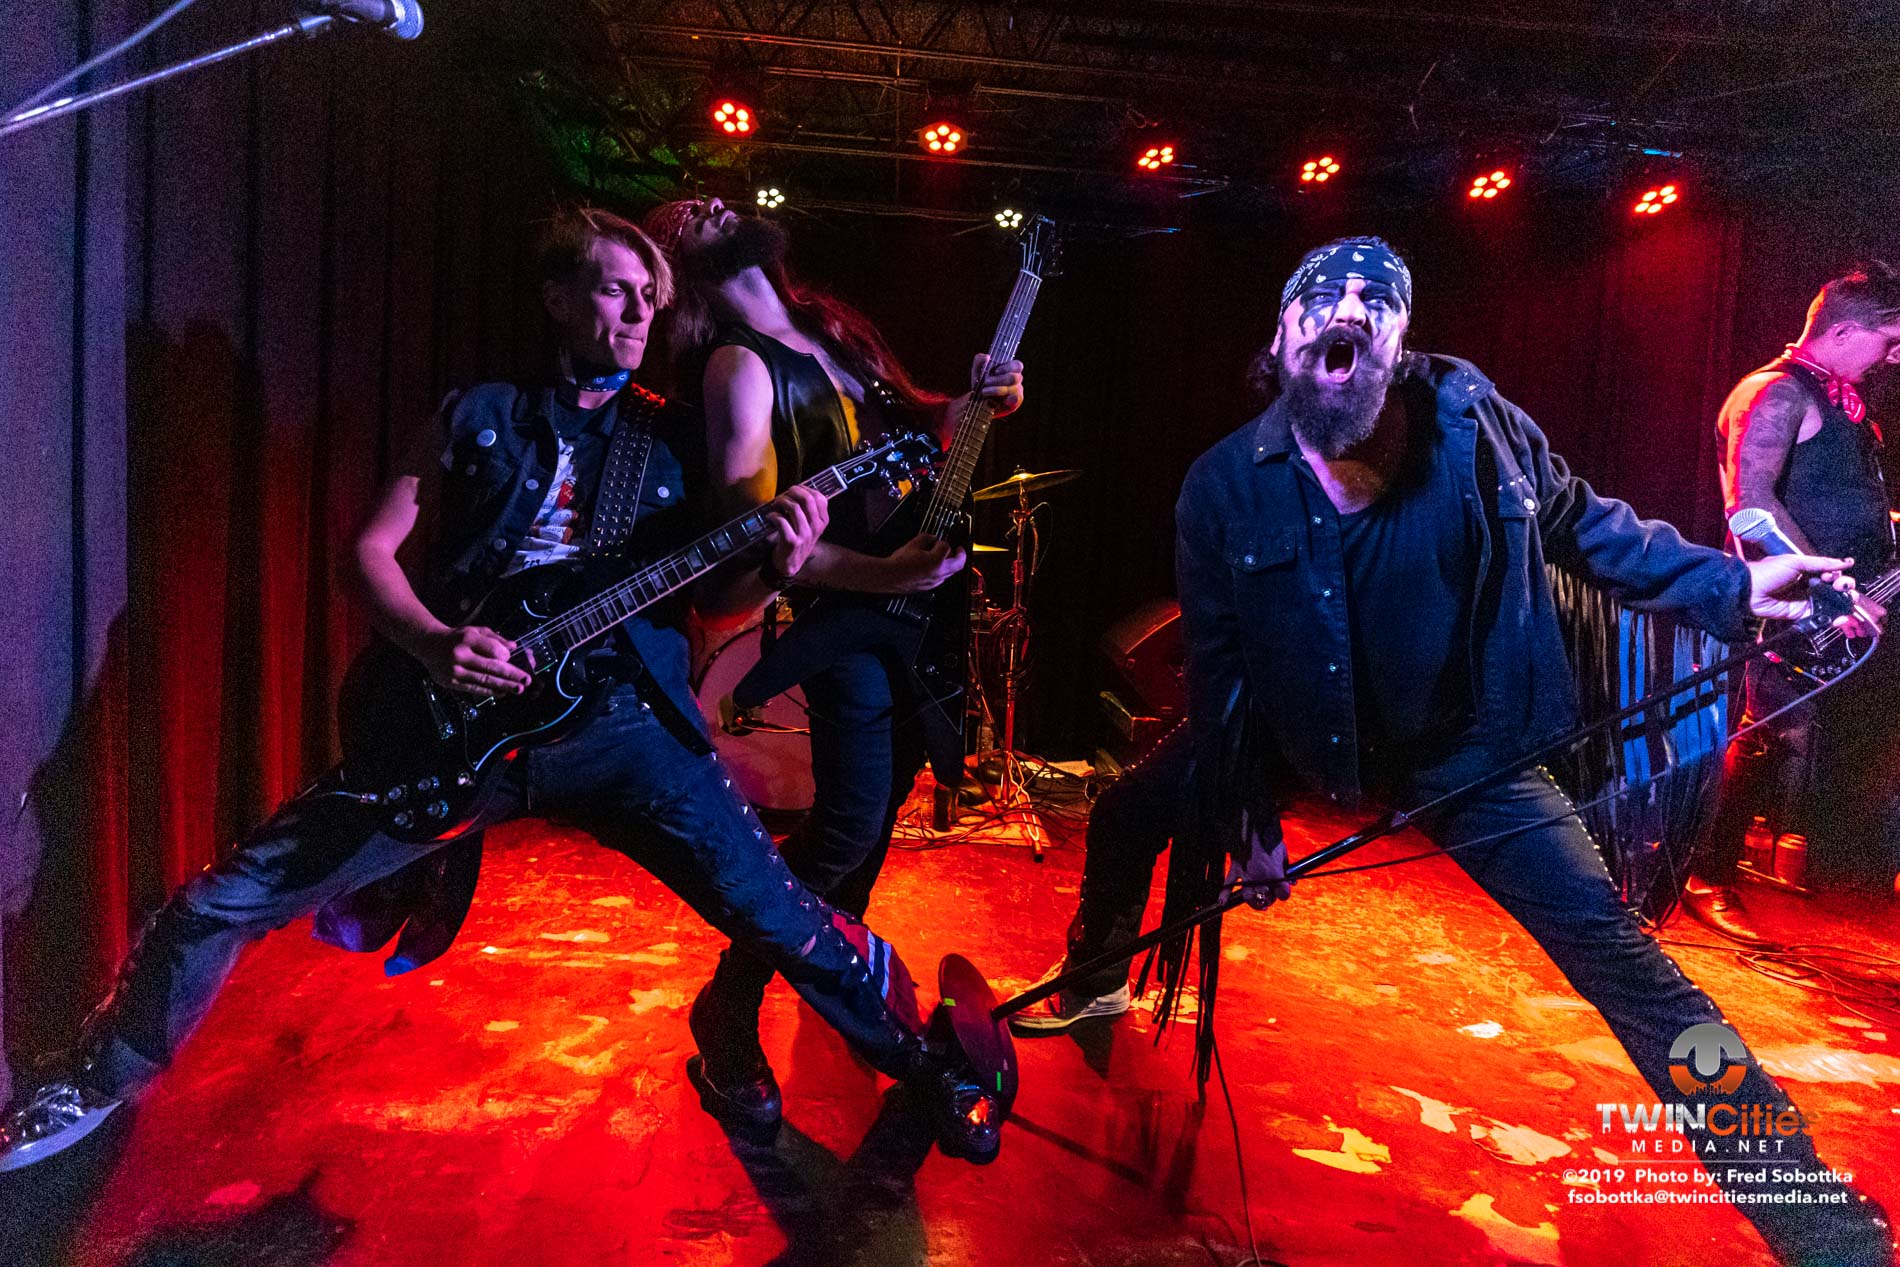 Hank Von Hell Impresses With First Minneapolis Show In Over